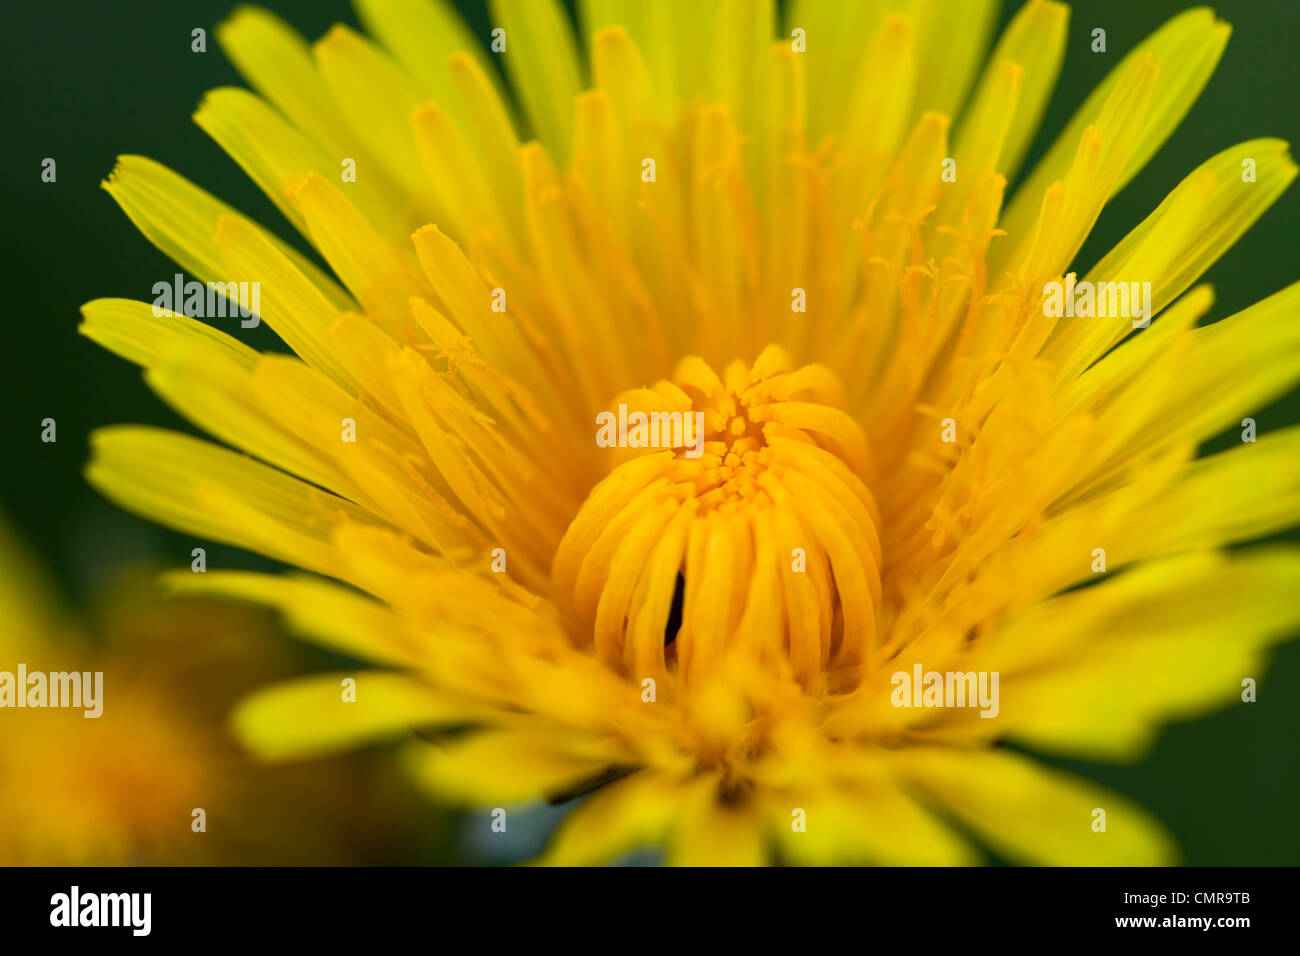 A close up of a dandelion flower - Stock Image